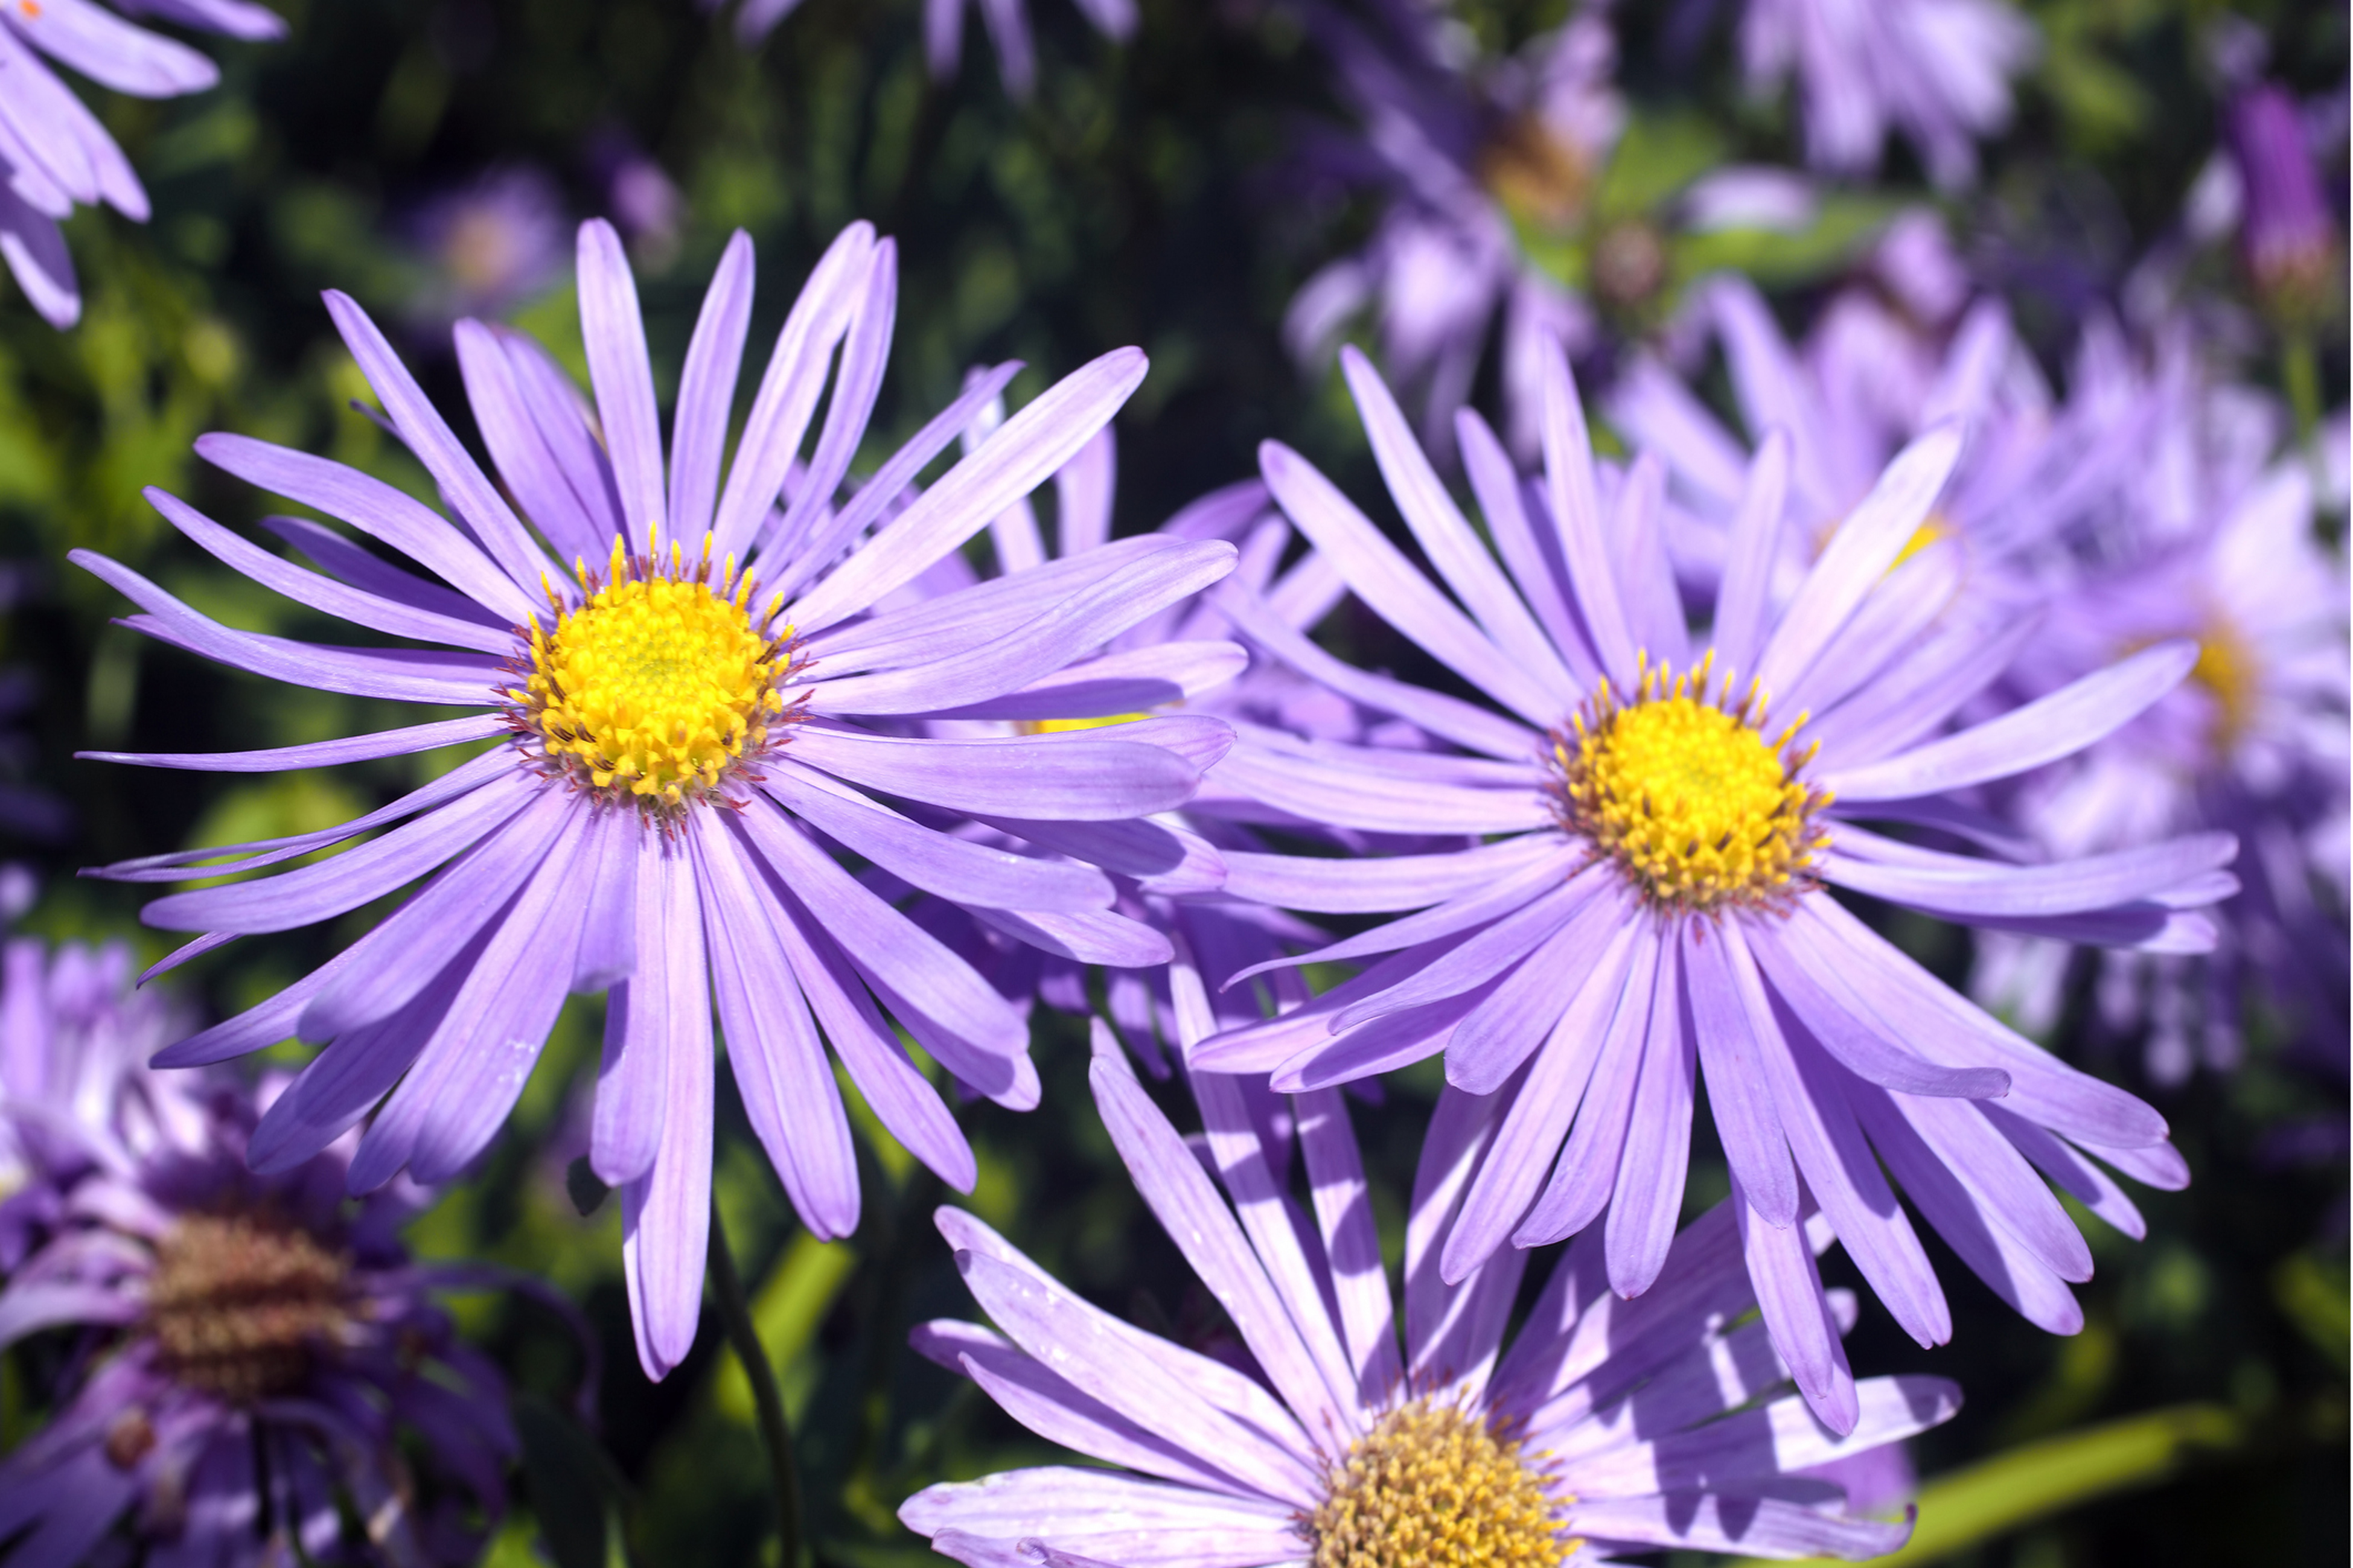 Aster x frikartii, known as the Michaelmas daisy, in bloom (Thinkstock/PA)